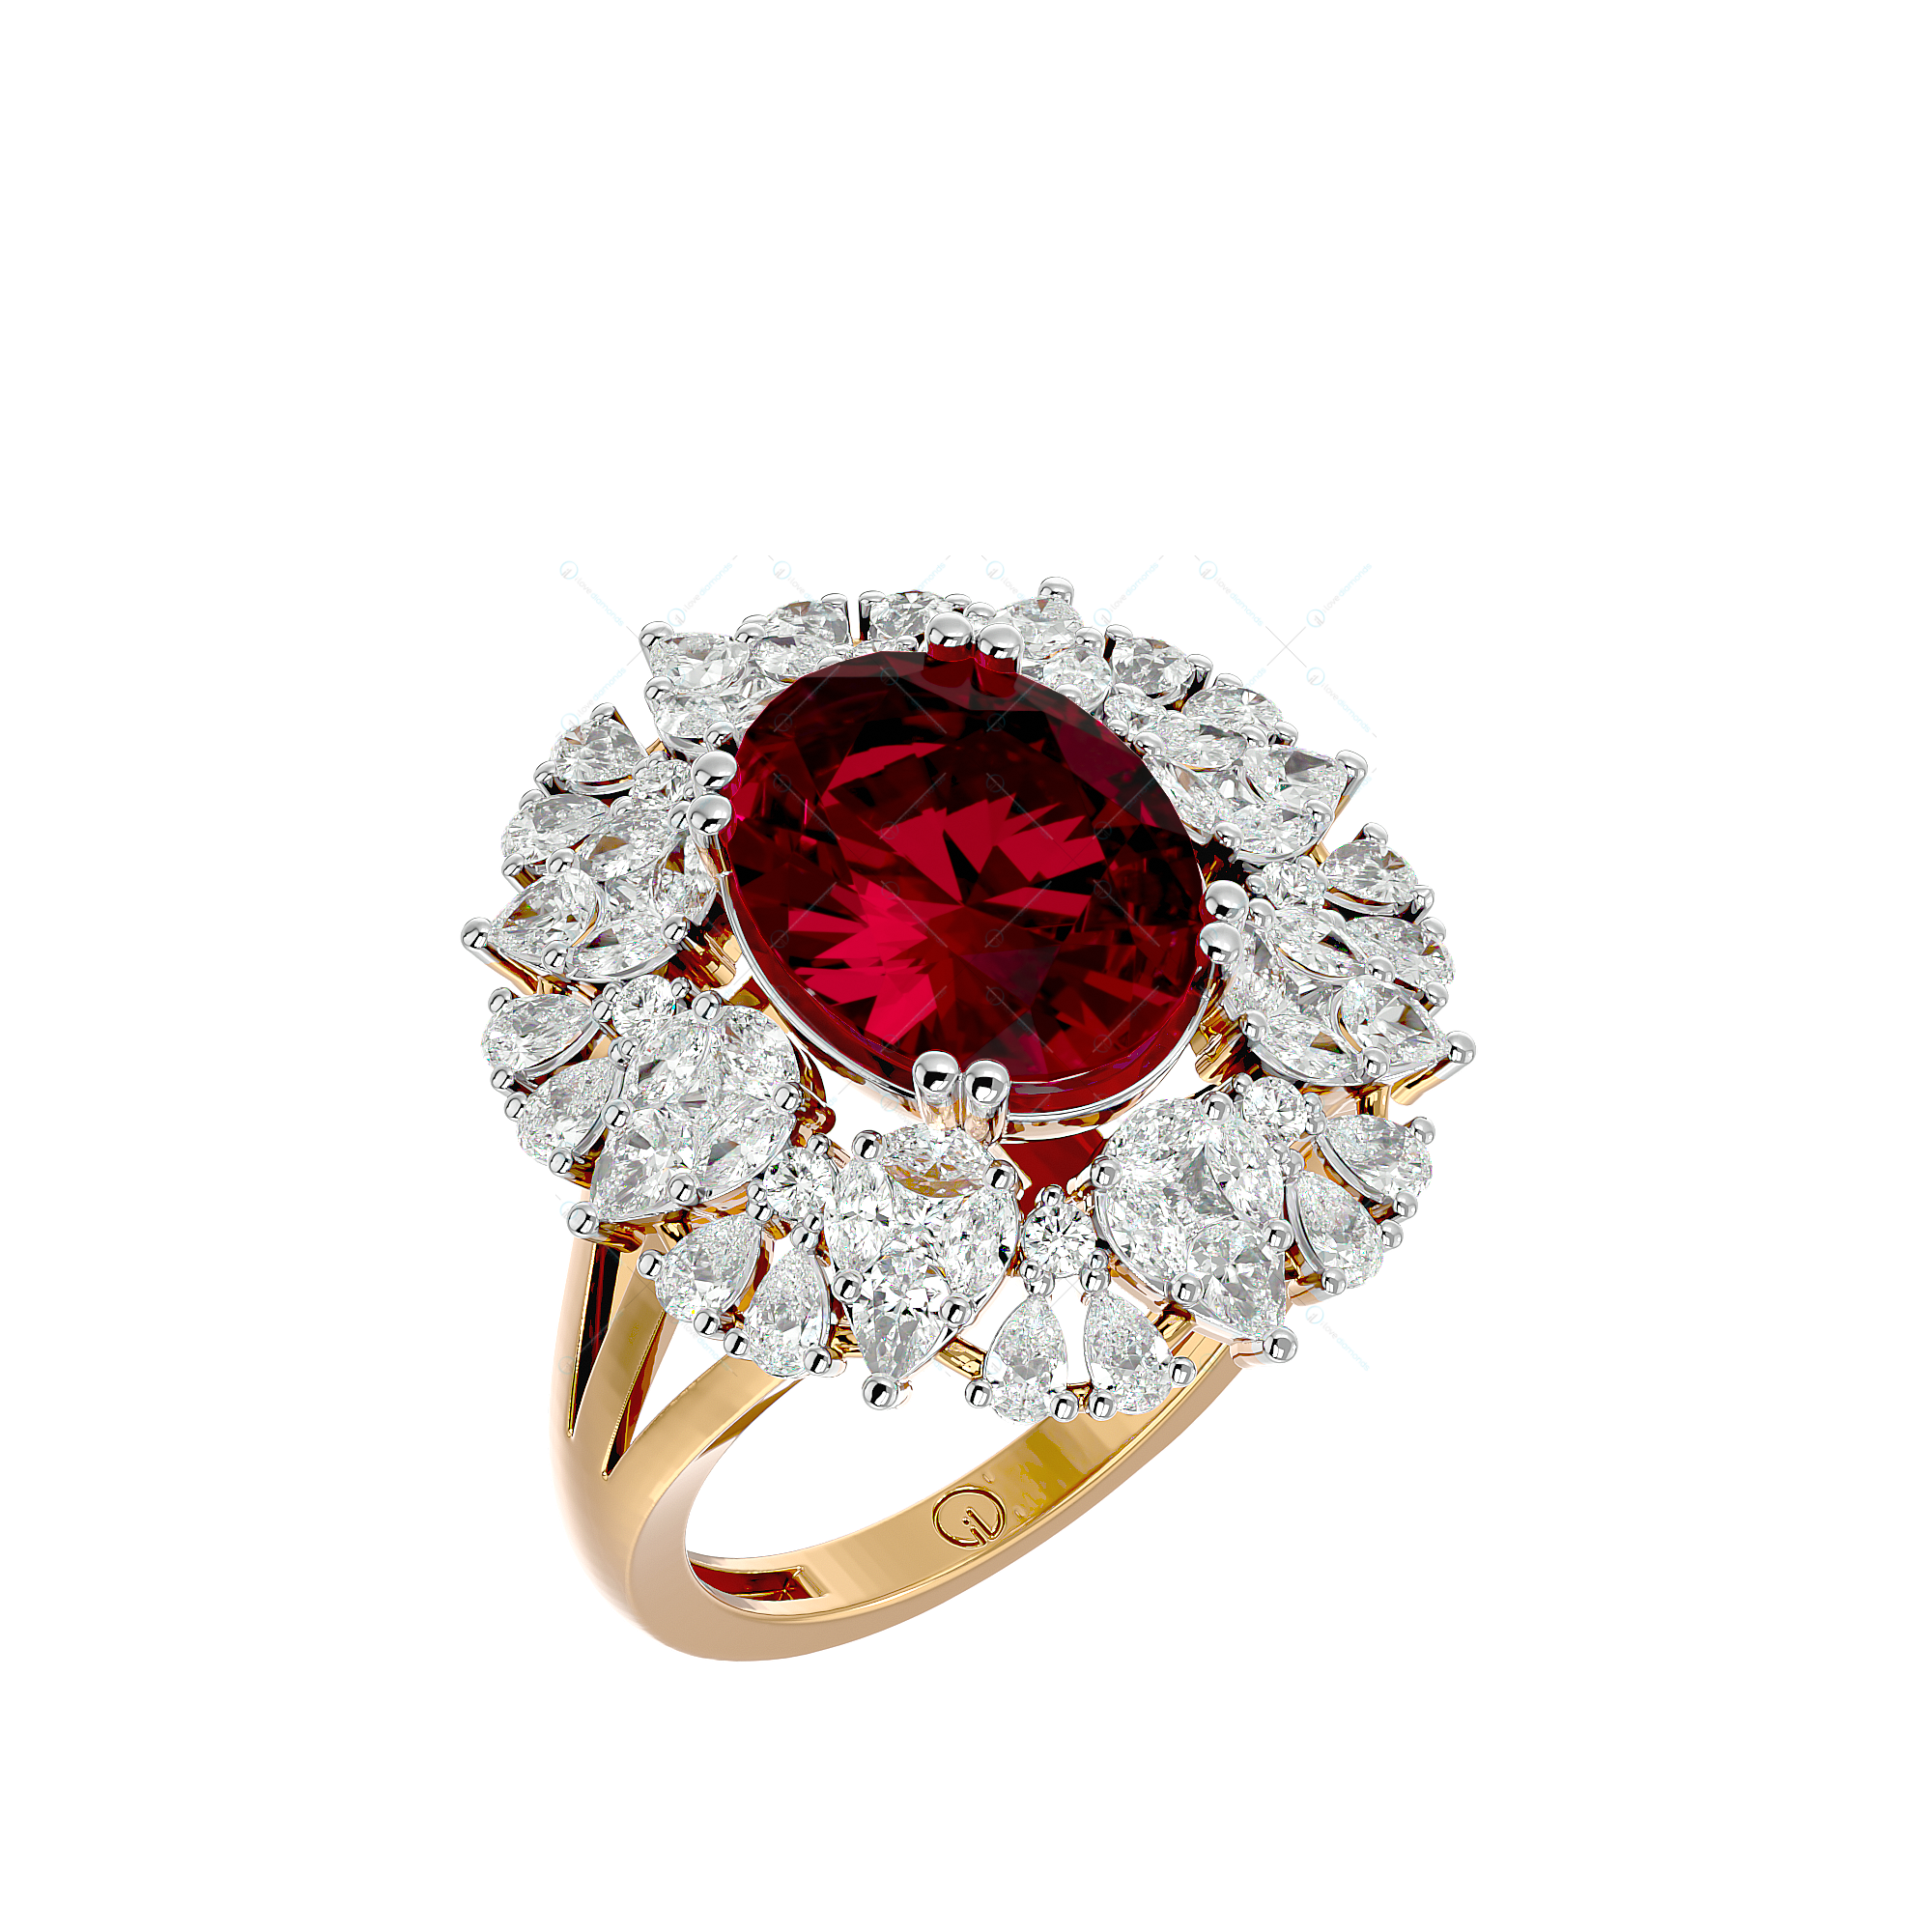 Cherry Red Coruscations Diamond Ring In Yellow Gold For Women v1